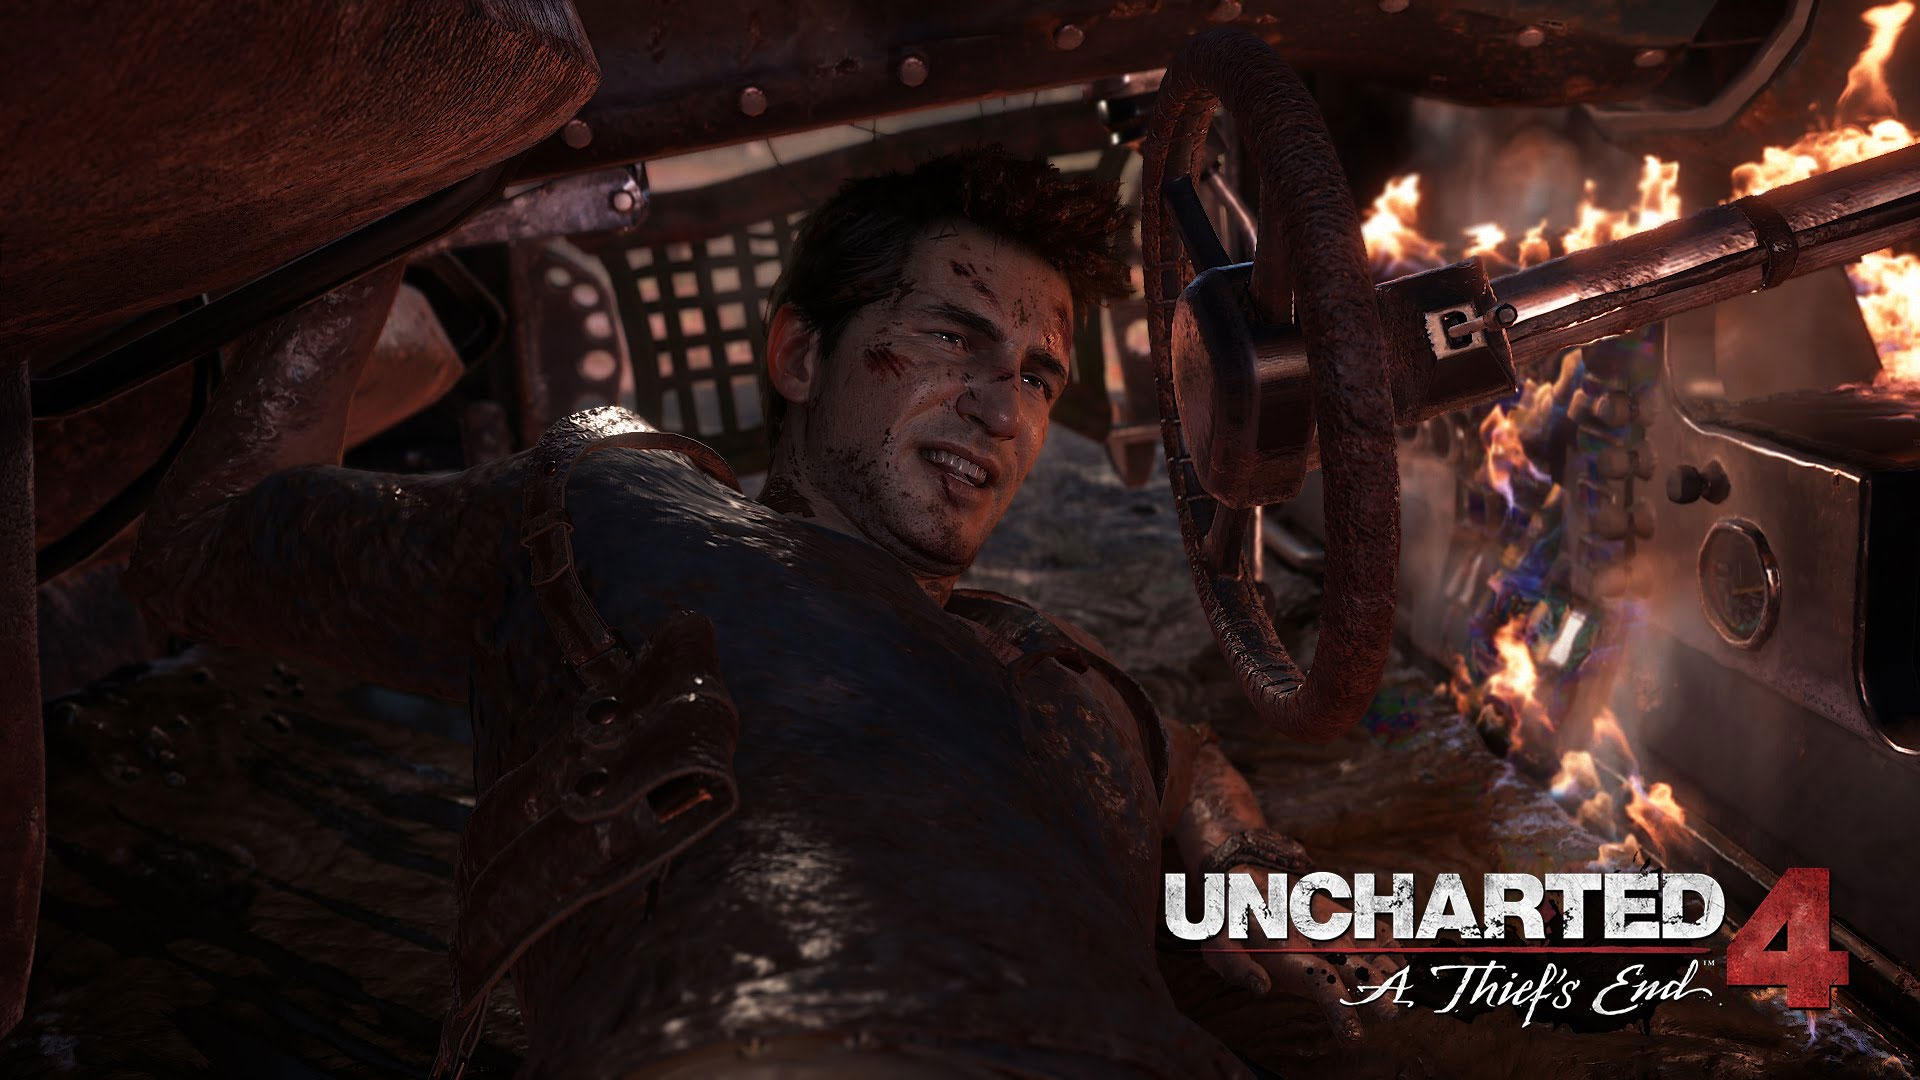 Uncharted 4 a thief 39 s end wallpapers in ultra hd 4k - Uncharted 4 wallpaper ps4 ...